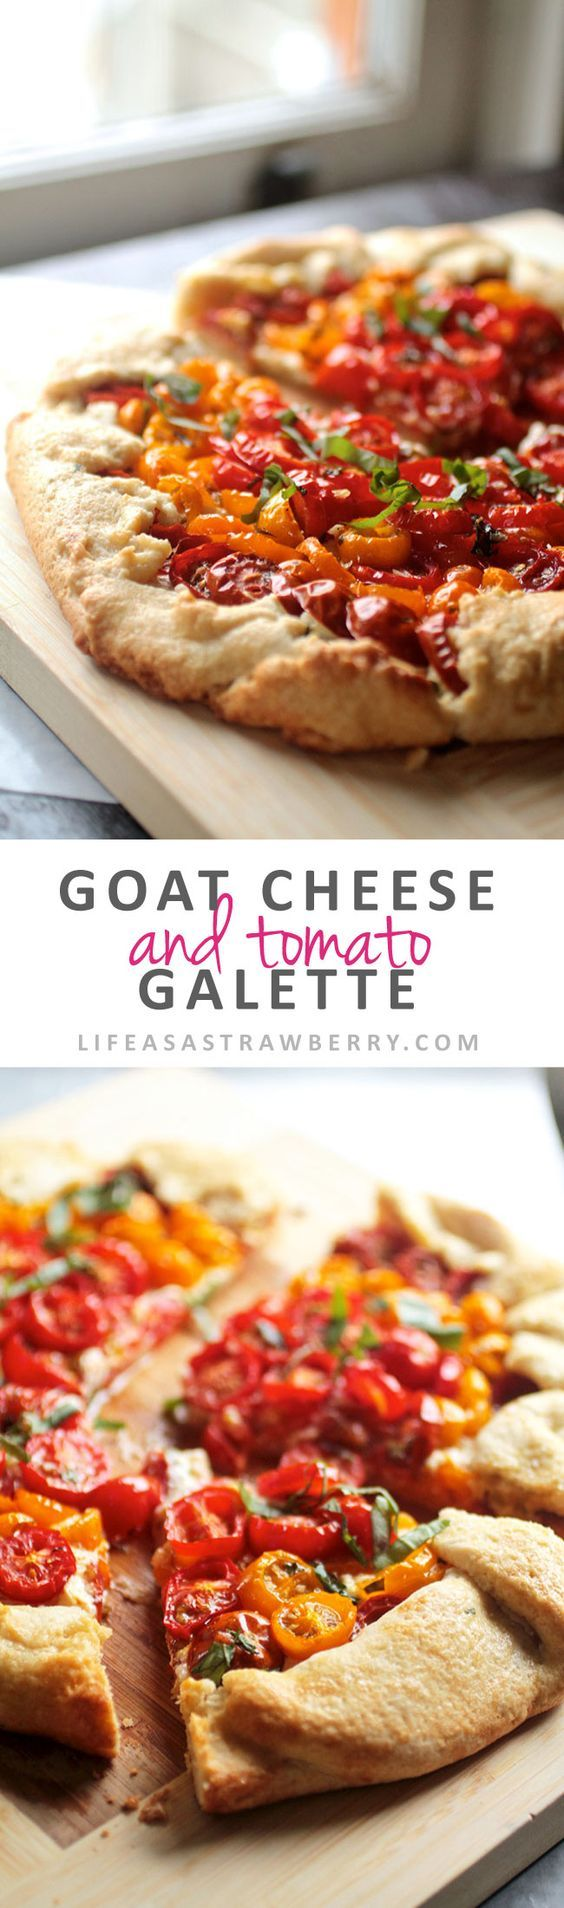 Goat Cheese Tomato Galette | This savory galette uses fresh summer tomatoes, creamy goat cheese and a sprinkling of fresh basil on a fresh homemade pie crust. Great as a side dish or as your main course - a delicious summer recipe! Vegetarian.